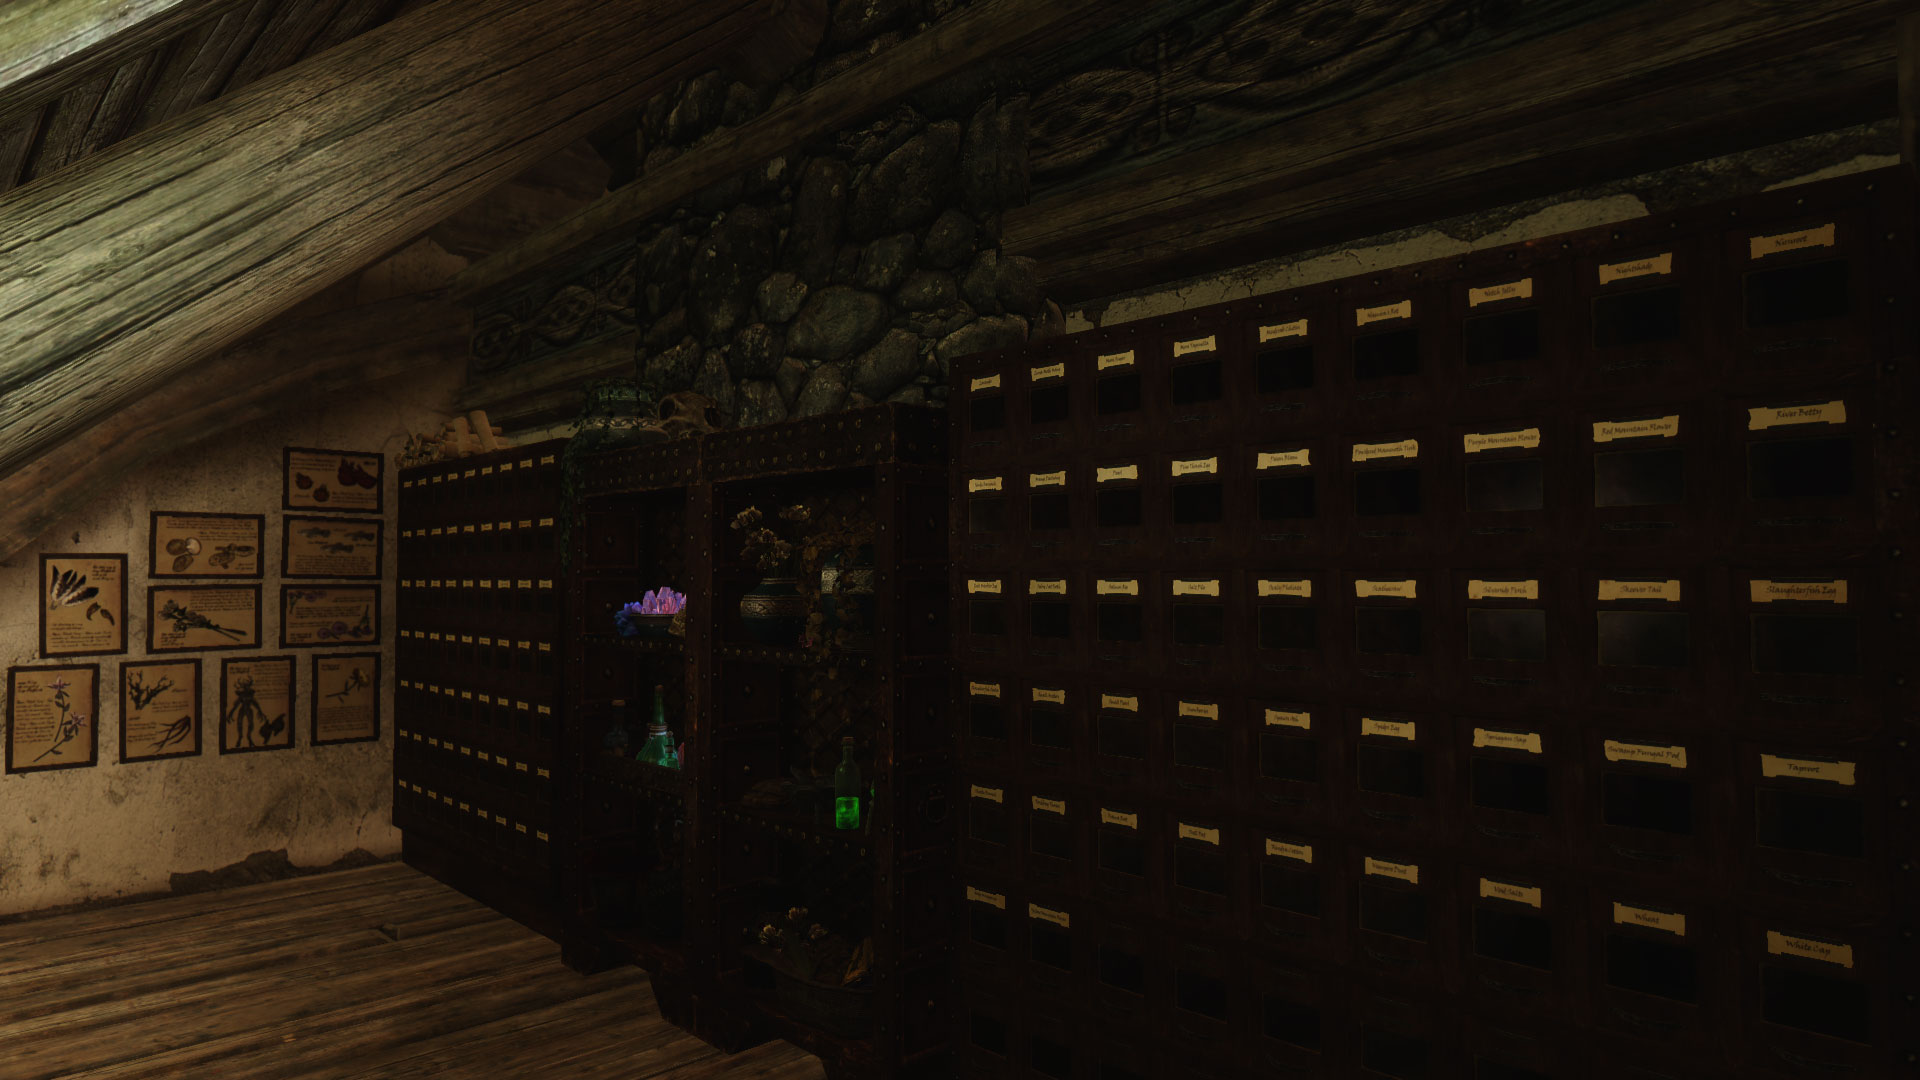 Skyrim lakeview manor evolution by mrpdean mods s for Skyrim fish hatchery